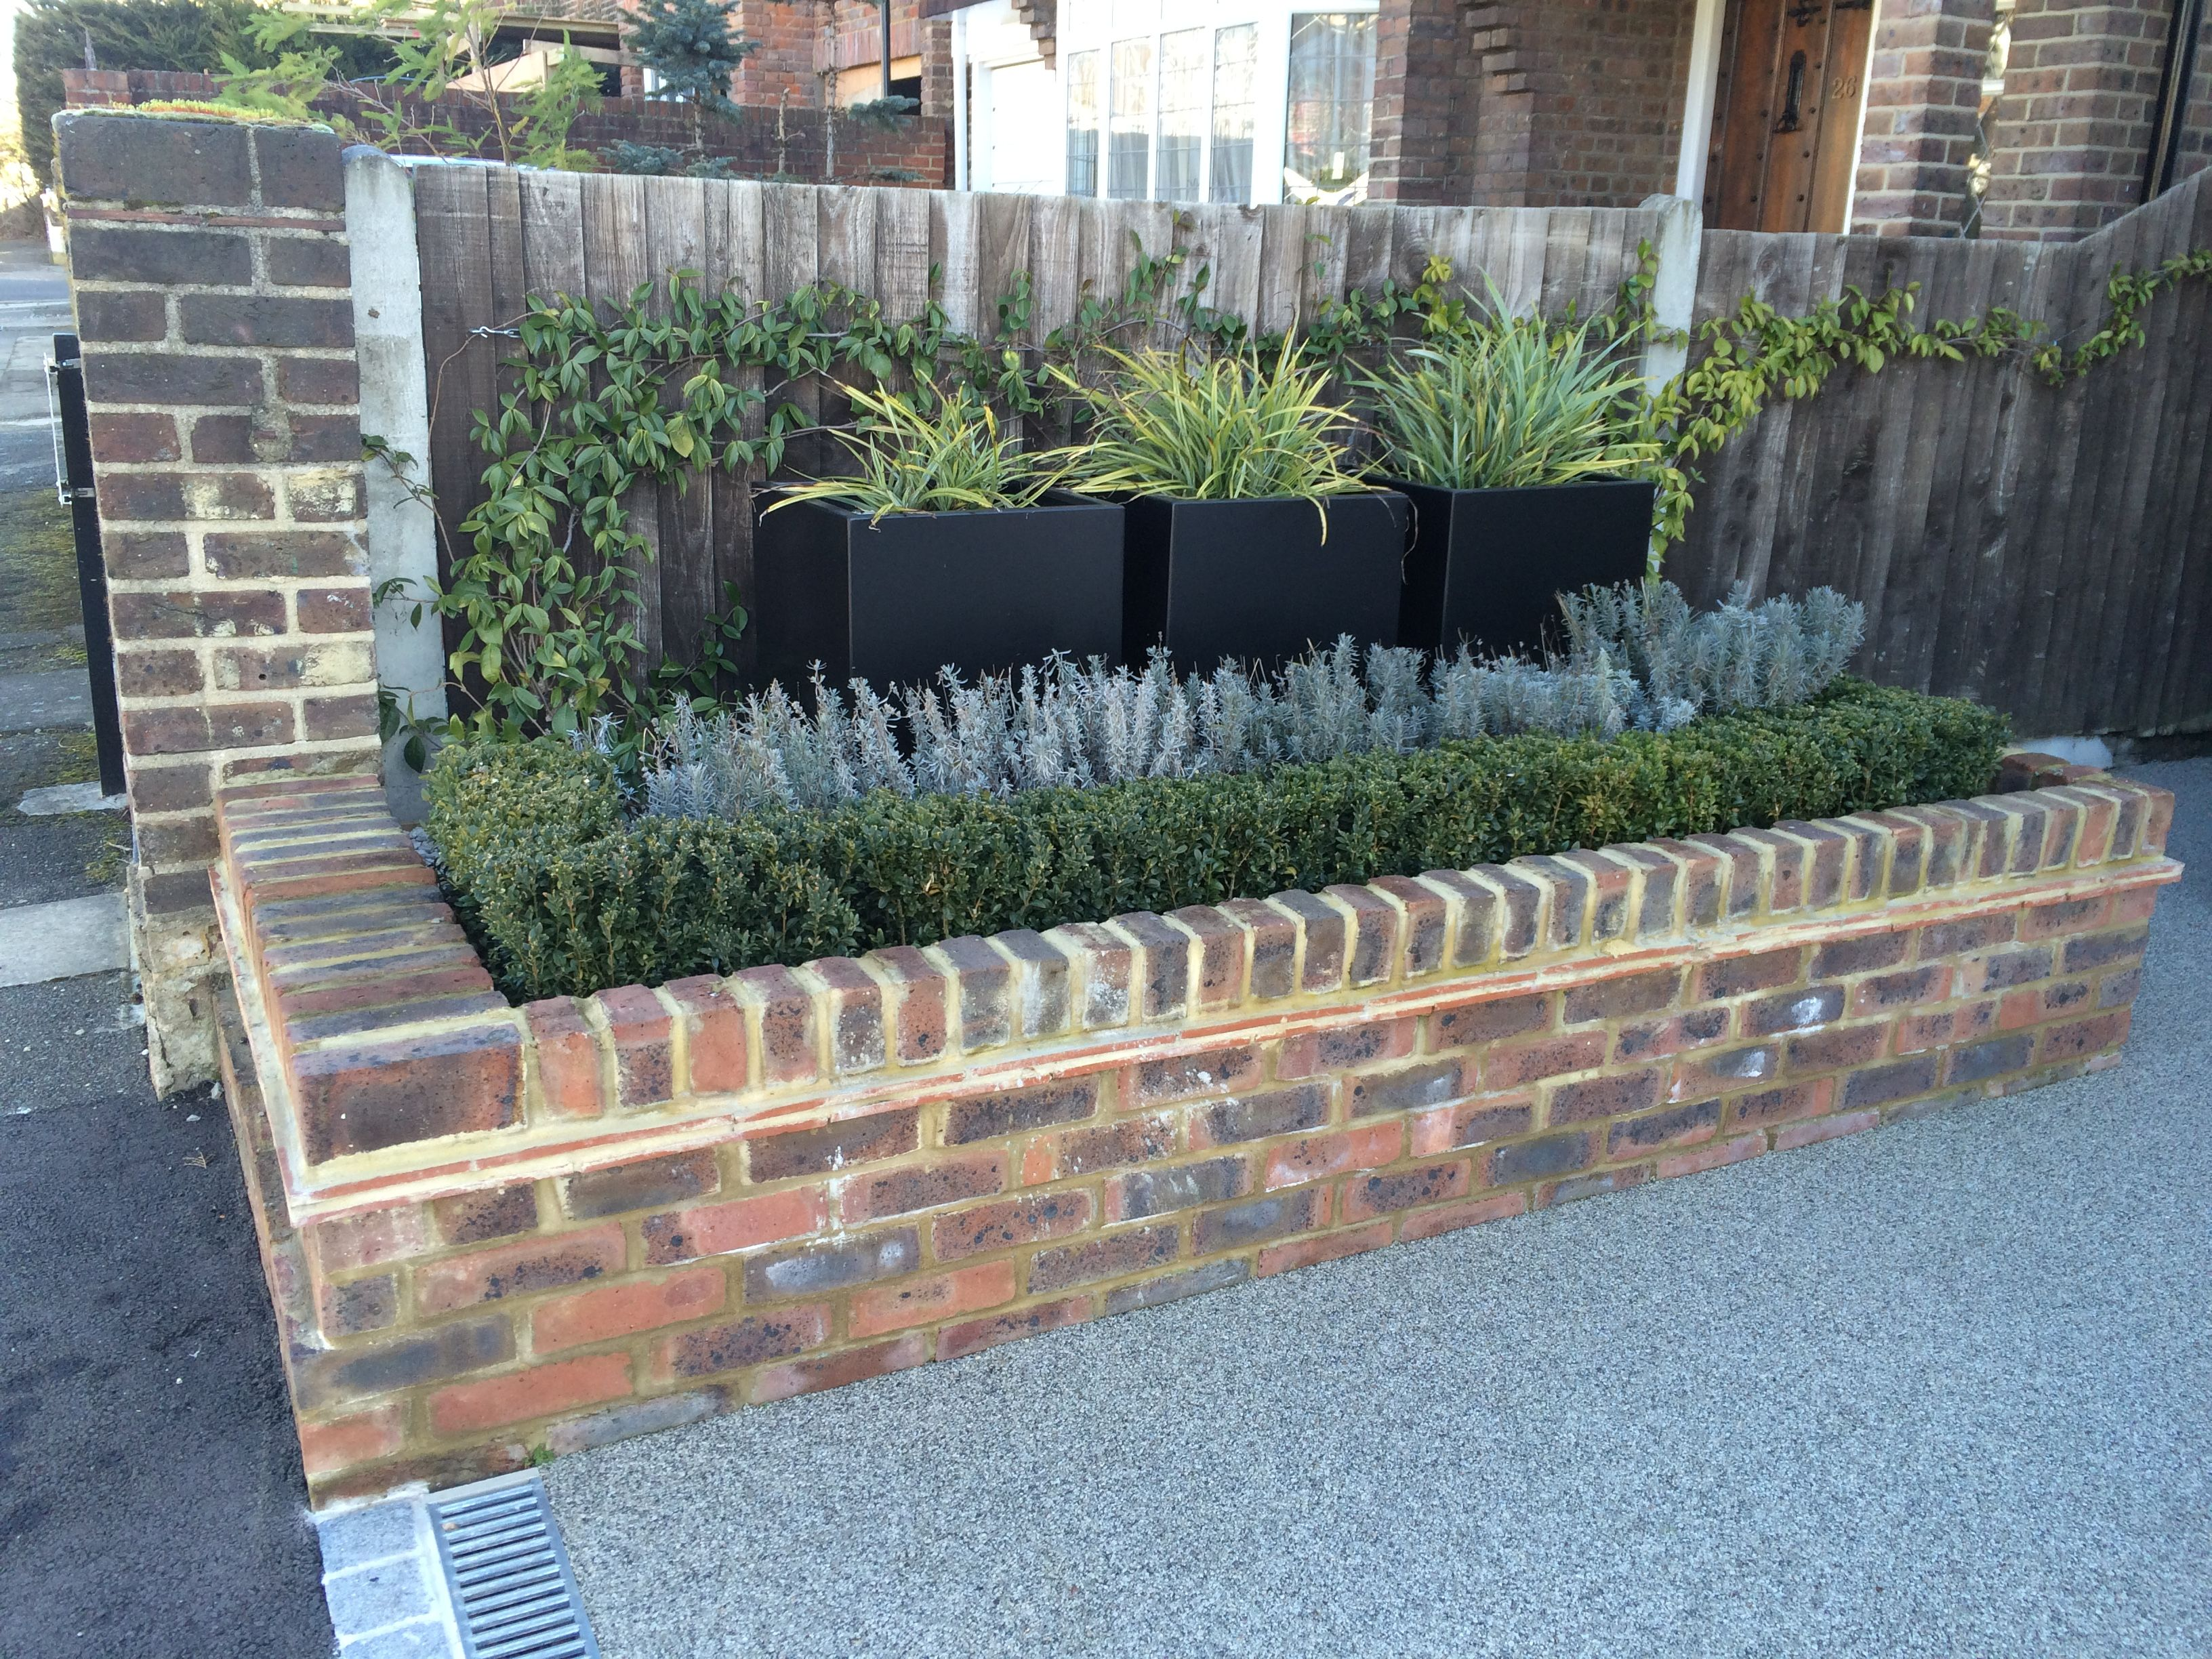 Raised brick bed with buxus hedge and lavender, planters